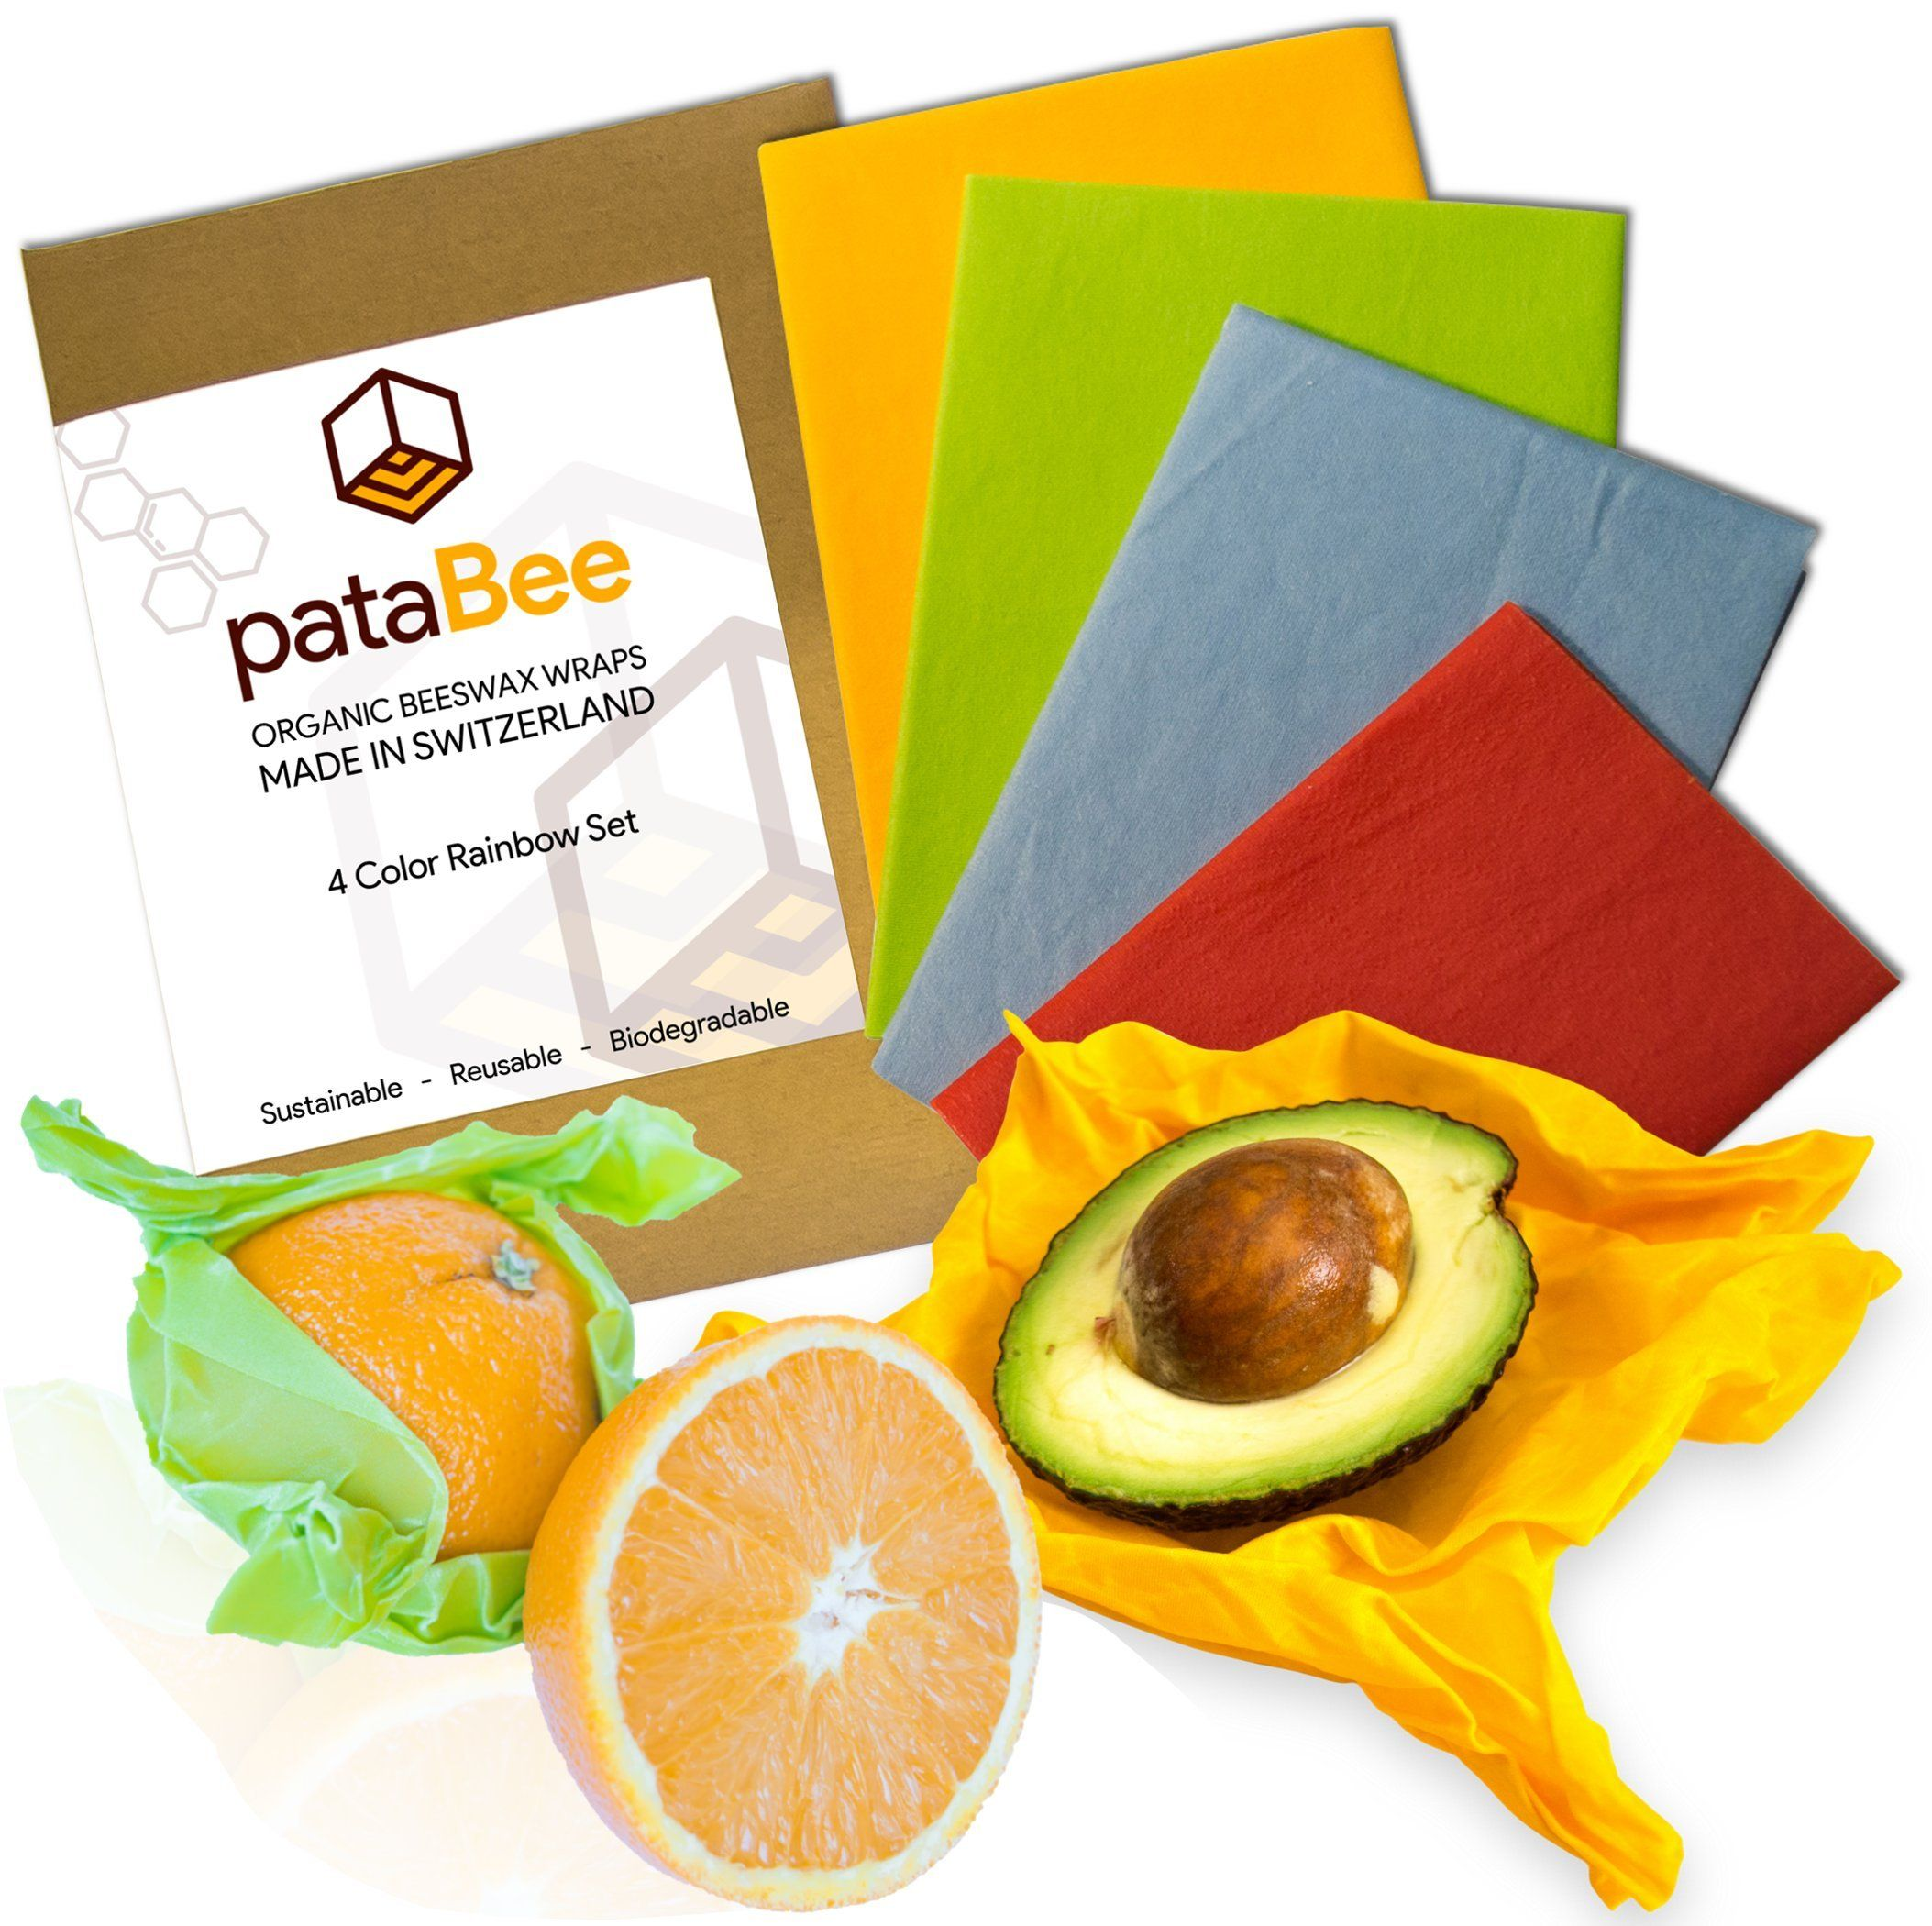 Organic Reusable Food Wraps by Etee - Biodegradable, Non